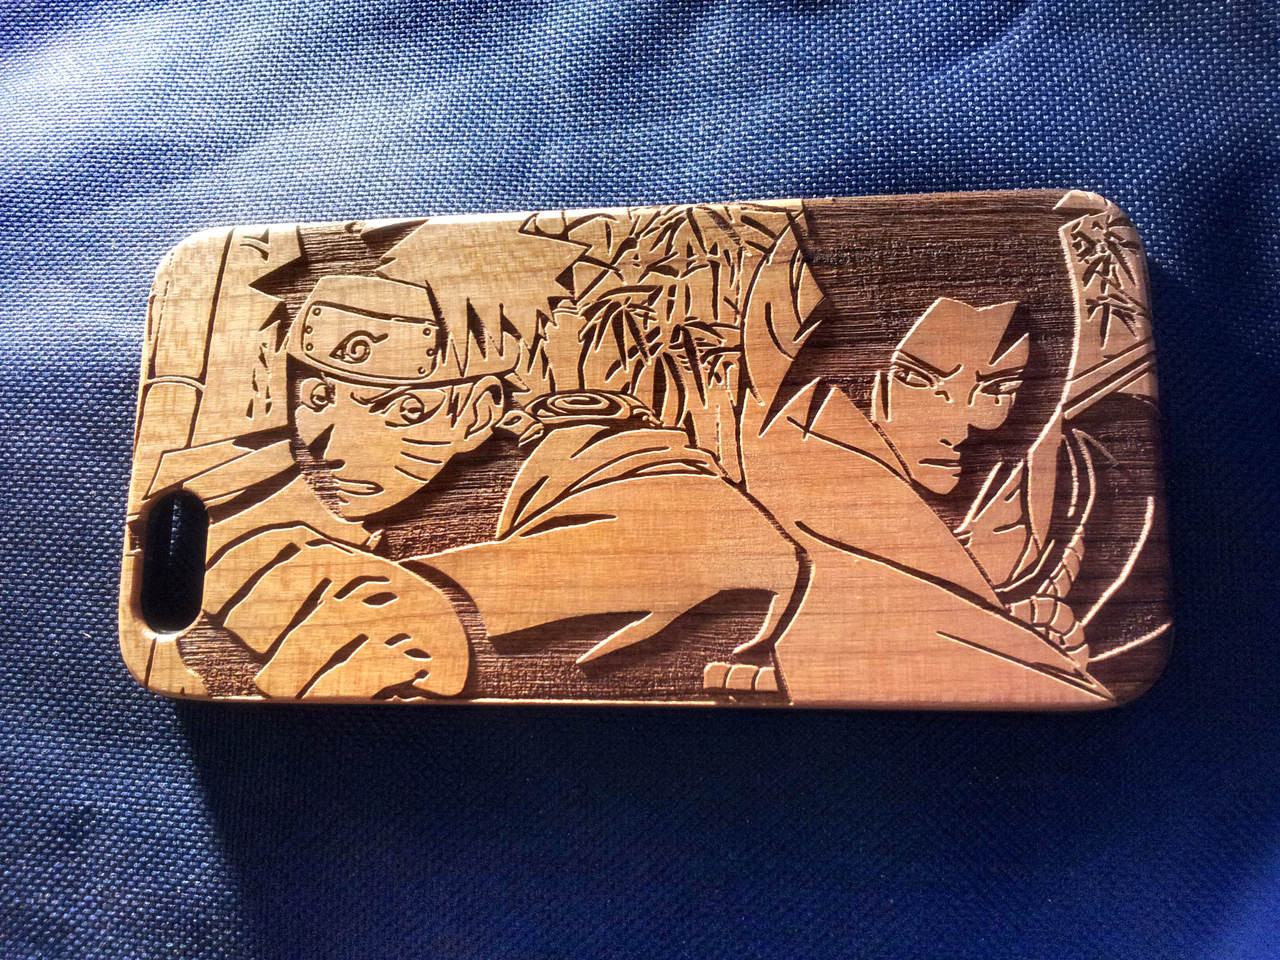 wholesale dealer 670a4 e38c0 Naruto wood Phone Case - Naruto & Sasuke Inspired - Laser Engraved  Personalised Gift - iPhone 5 5s 6 plus - 43